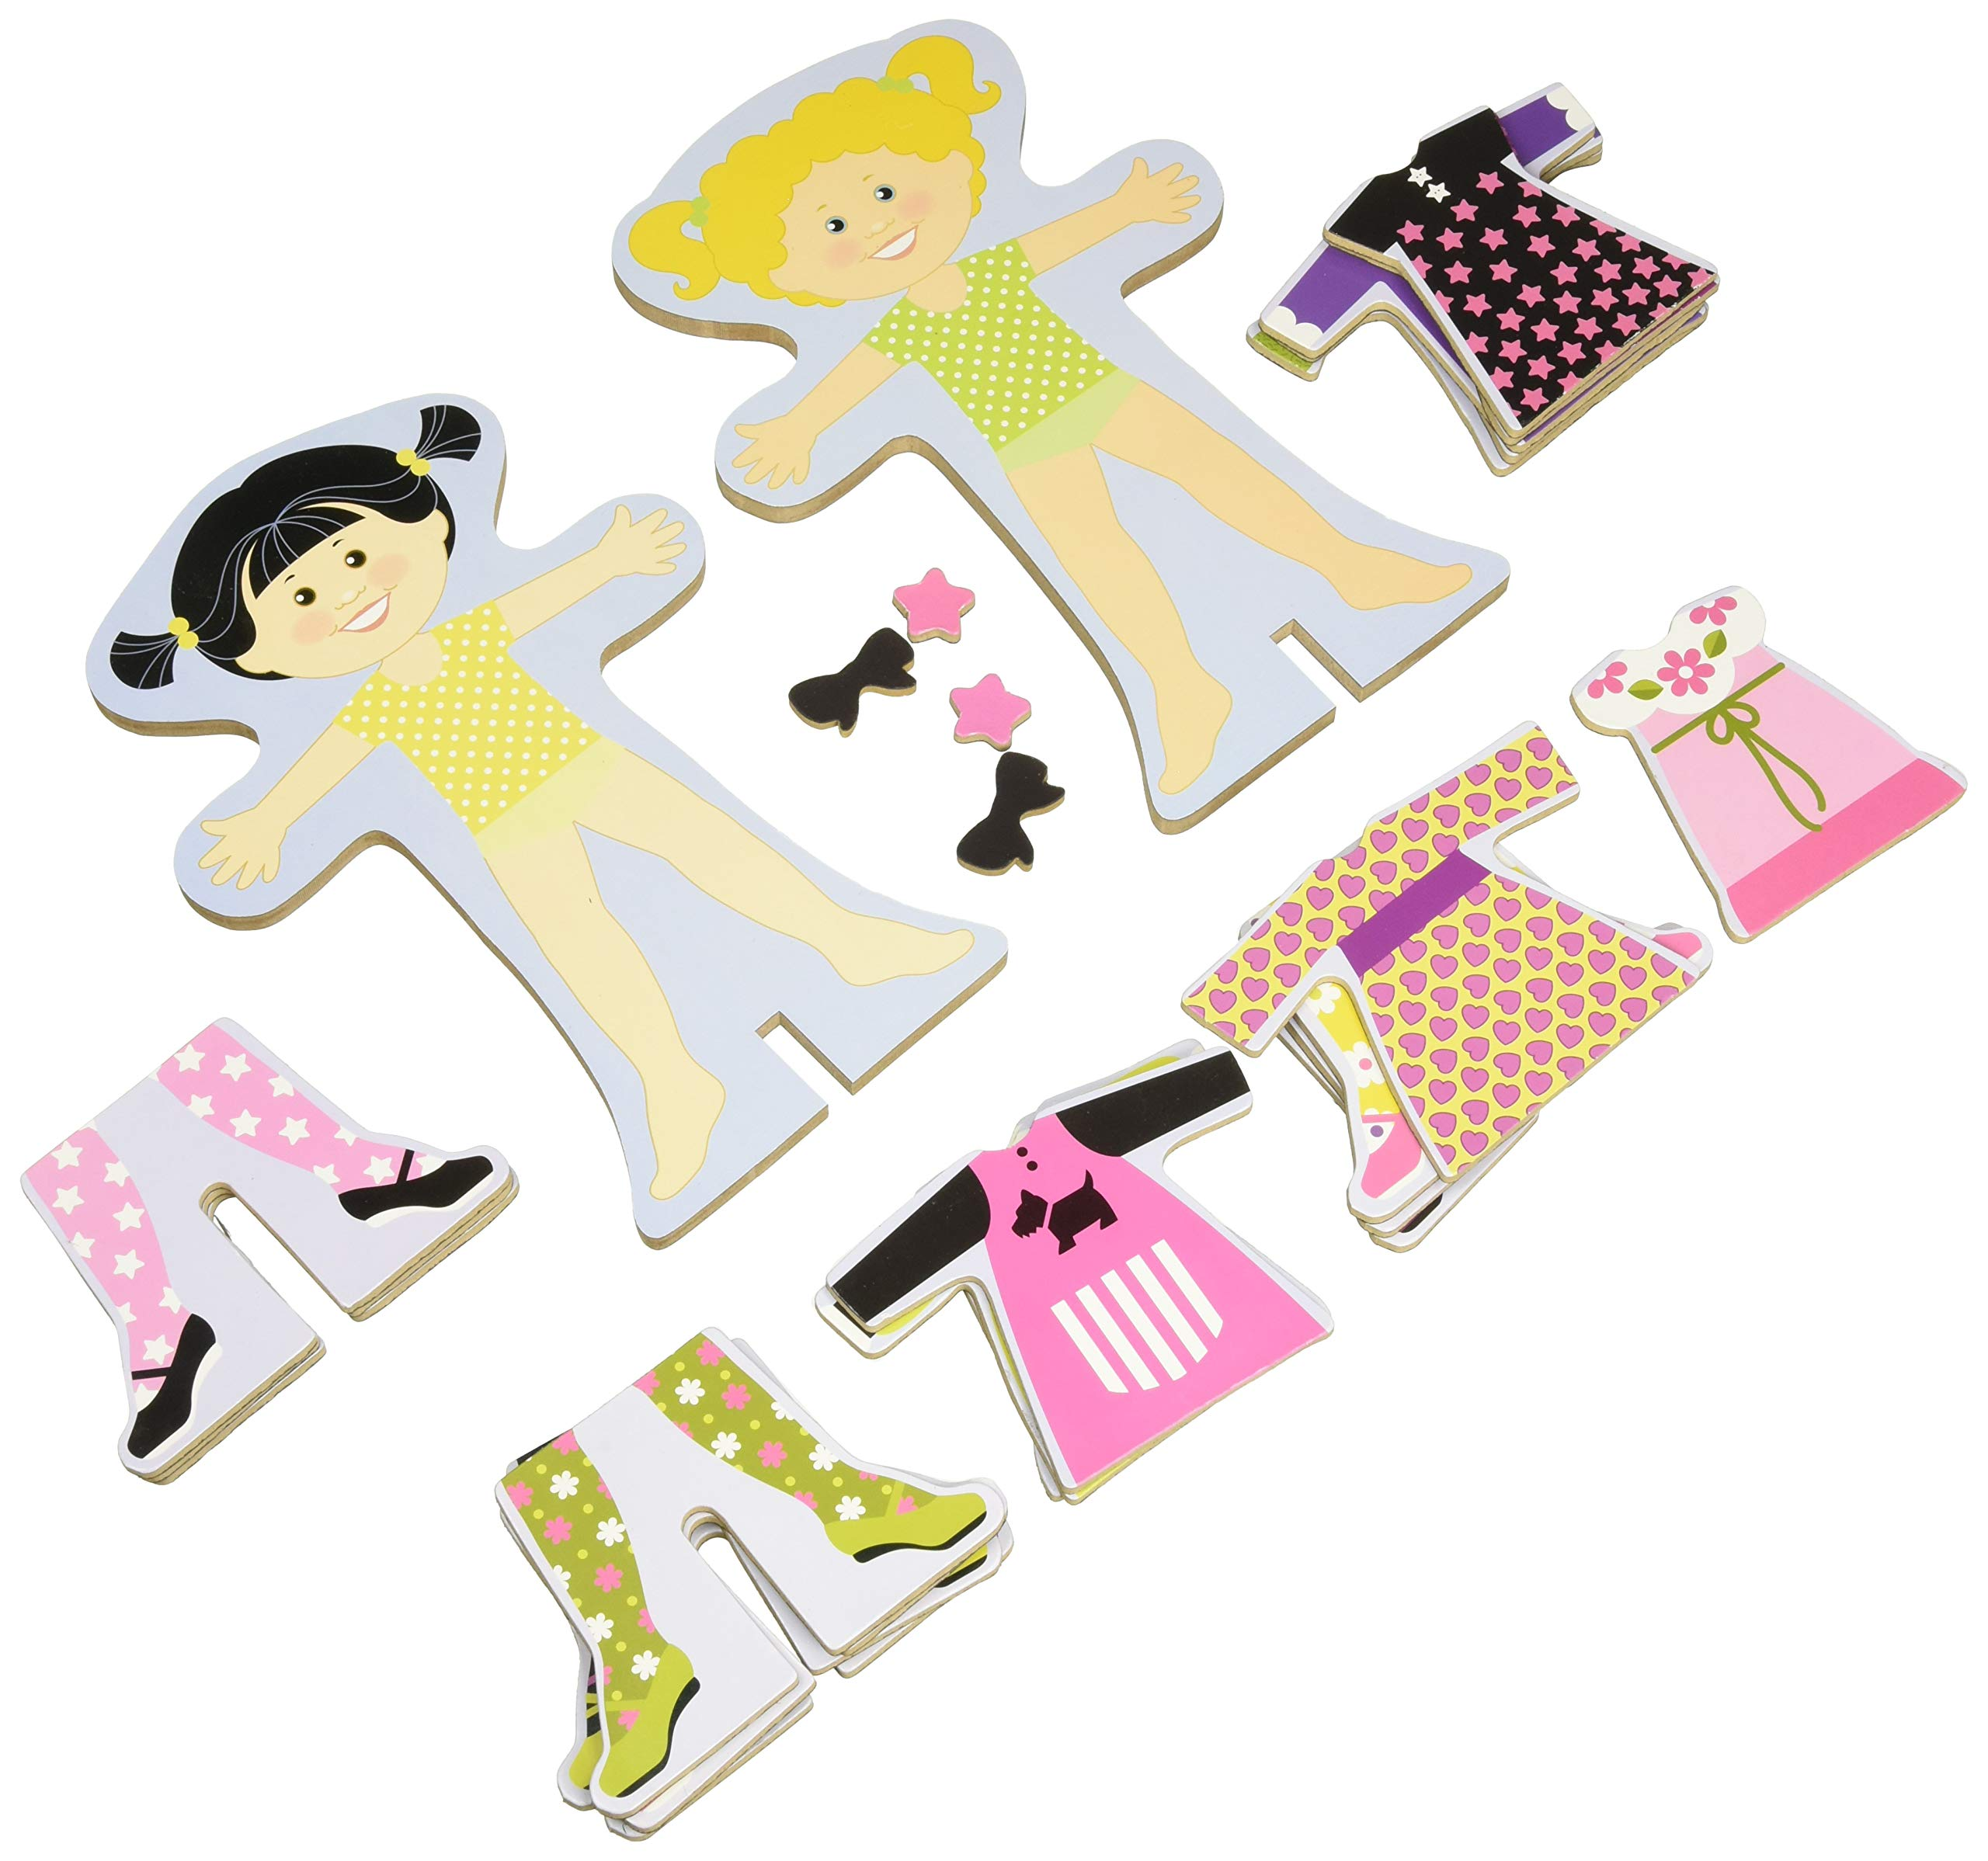 Melissa & Doug Tops And Tights Magnetic Dress-up Wooden Doll Pretend Play Set